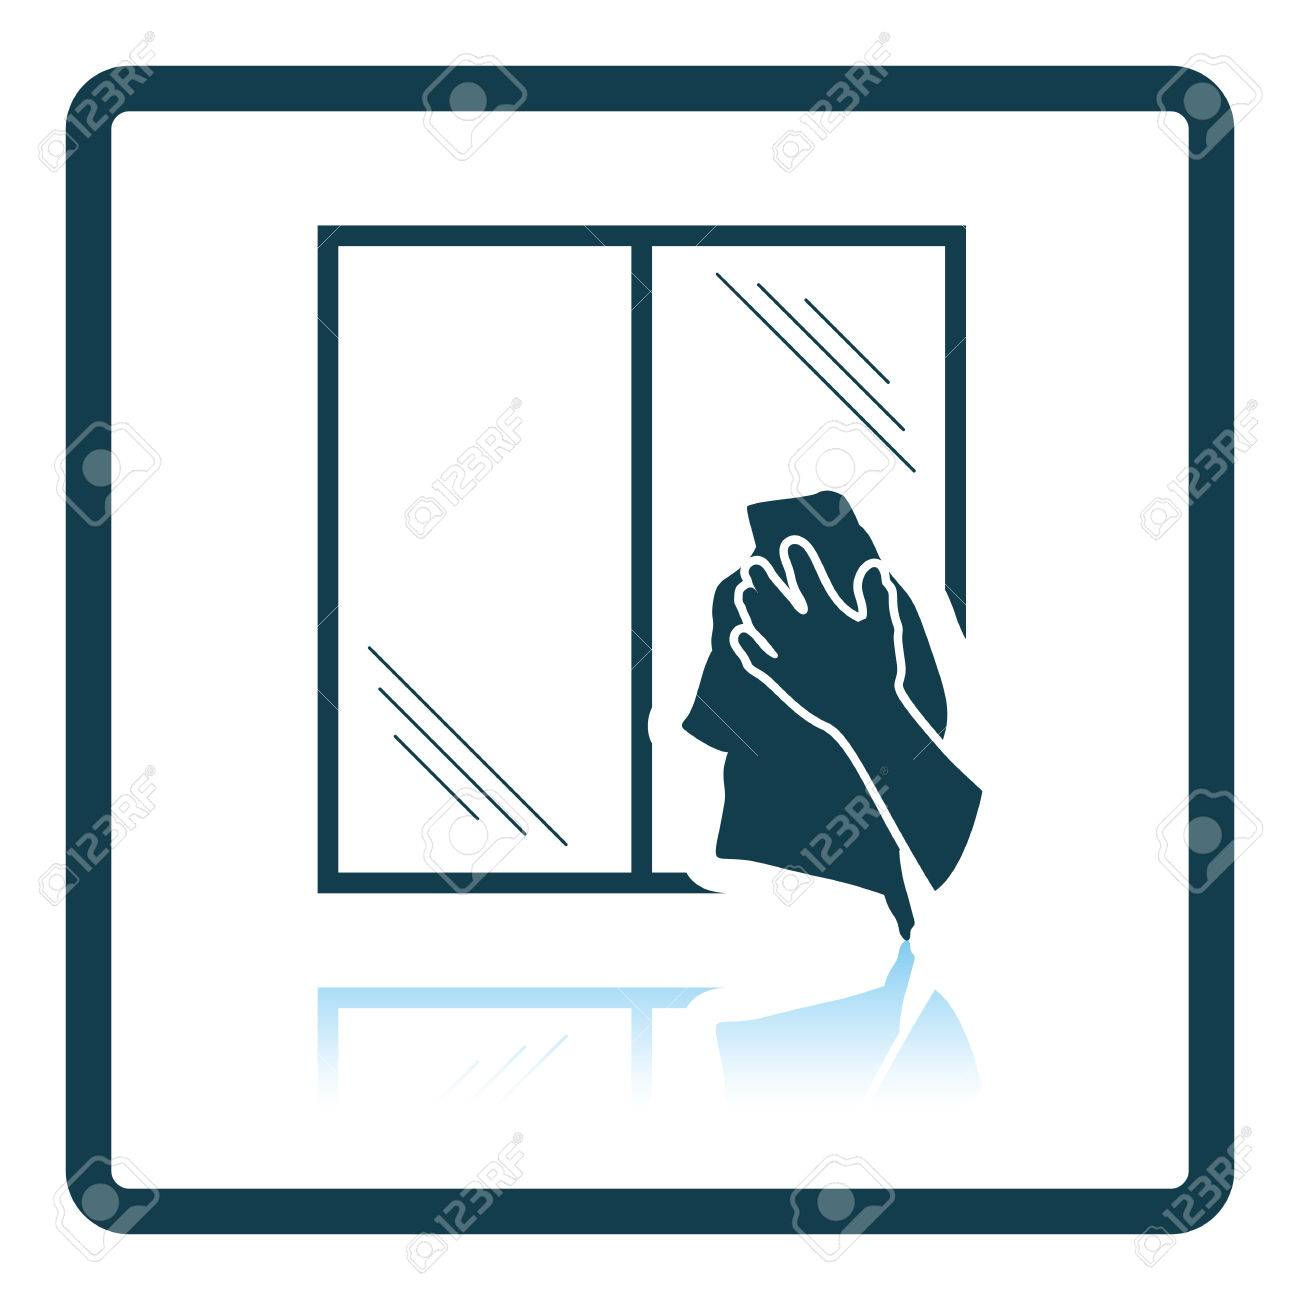 438e661a9e0 Hand wiping window icon. Shadow reflection design. Vector illustration. Stock  Vector - 60245944